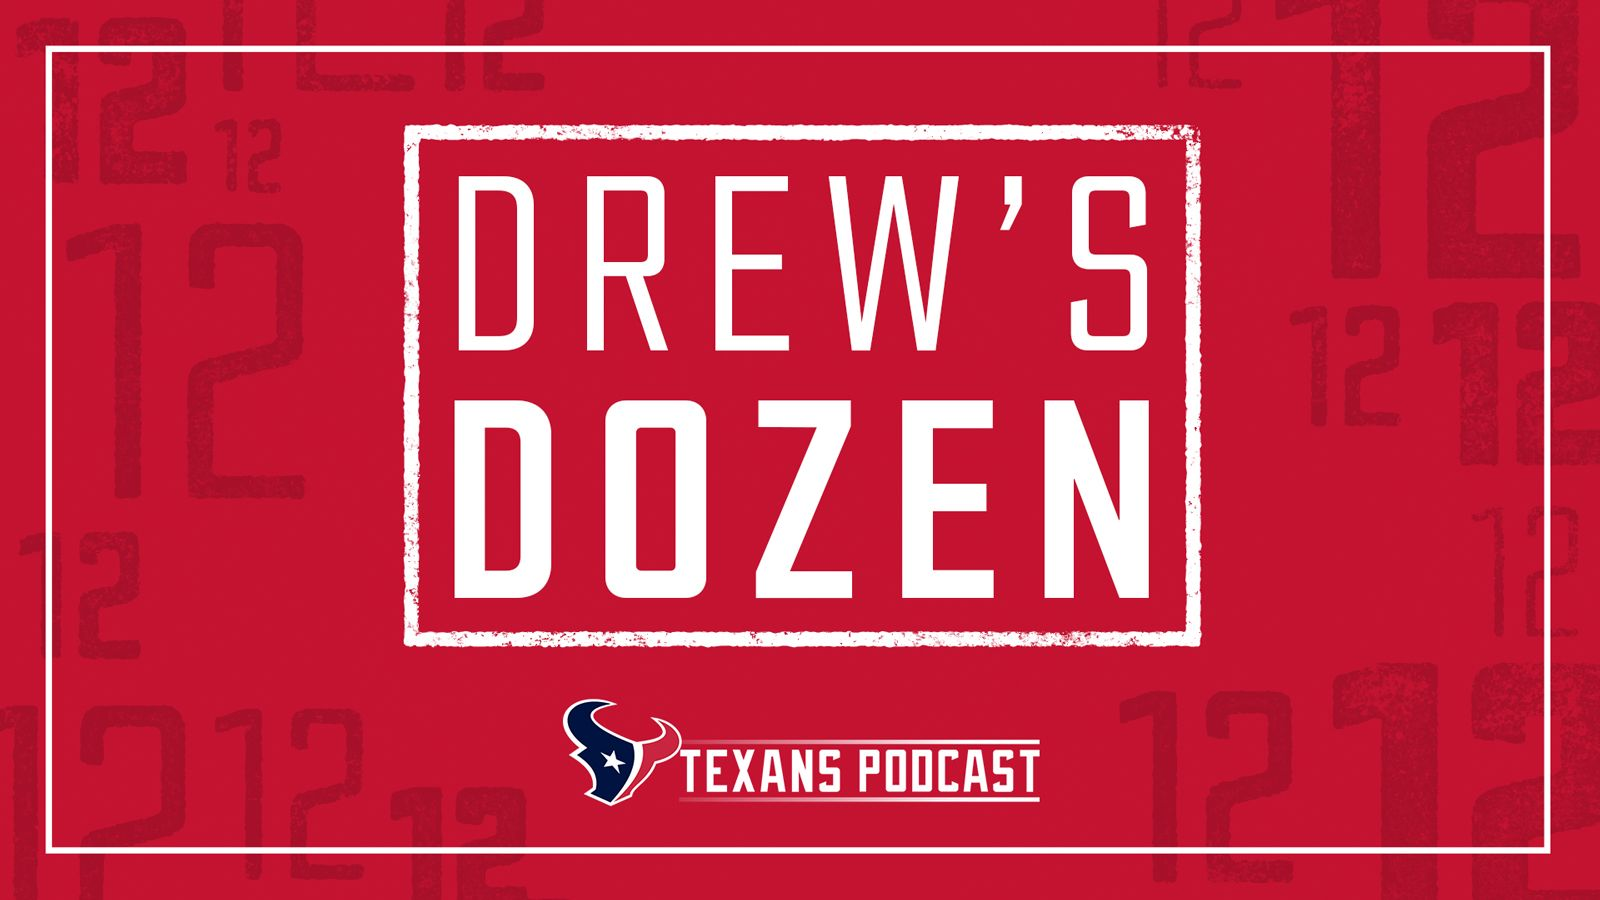 web_TexansPodcast_DrewsDozen_1600x900